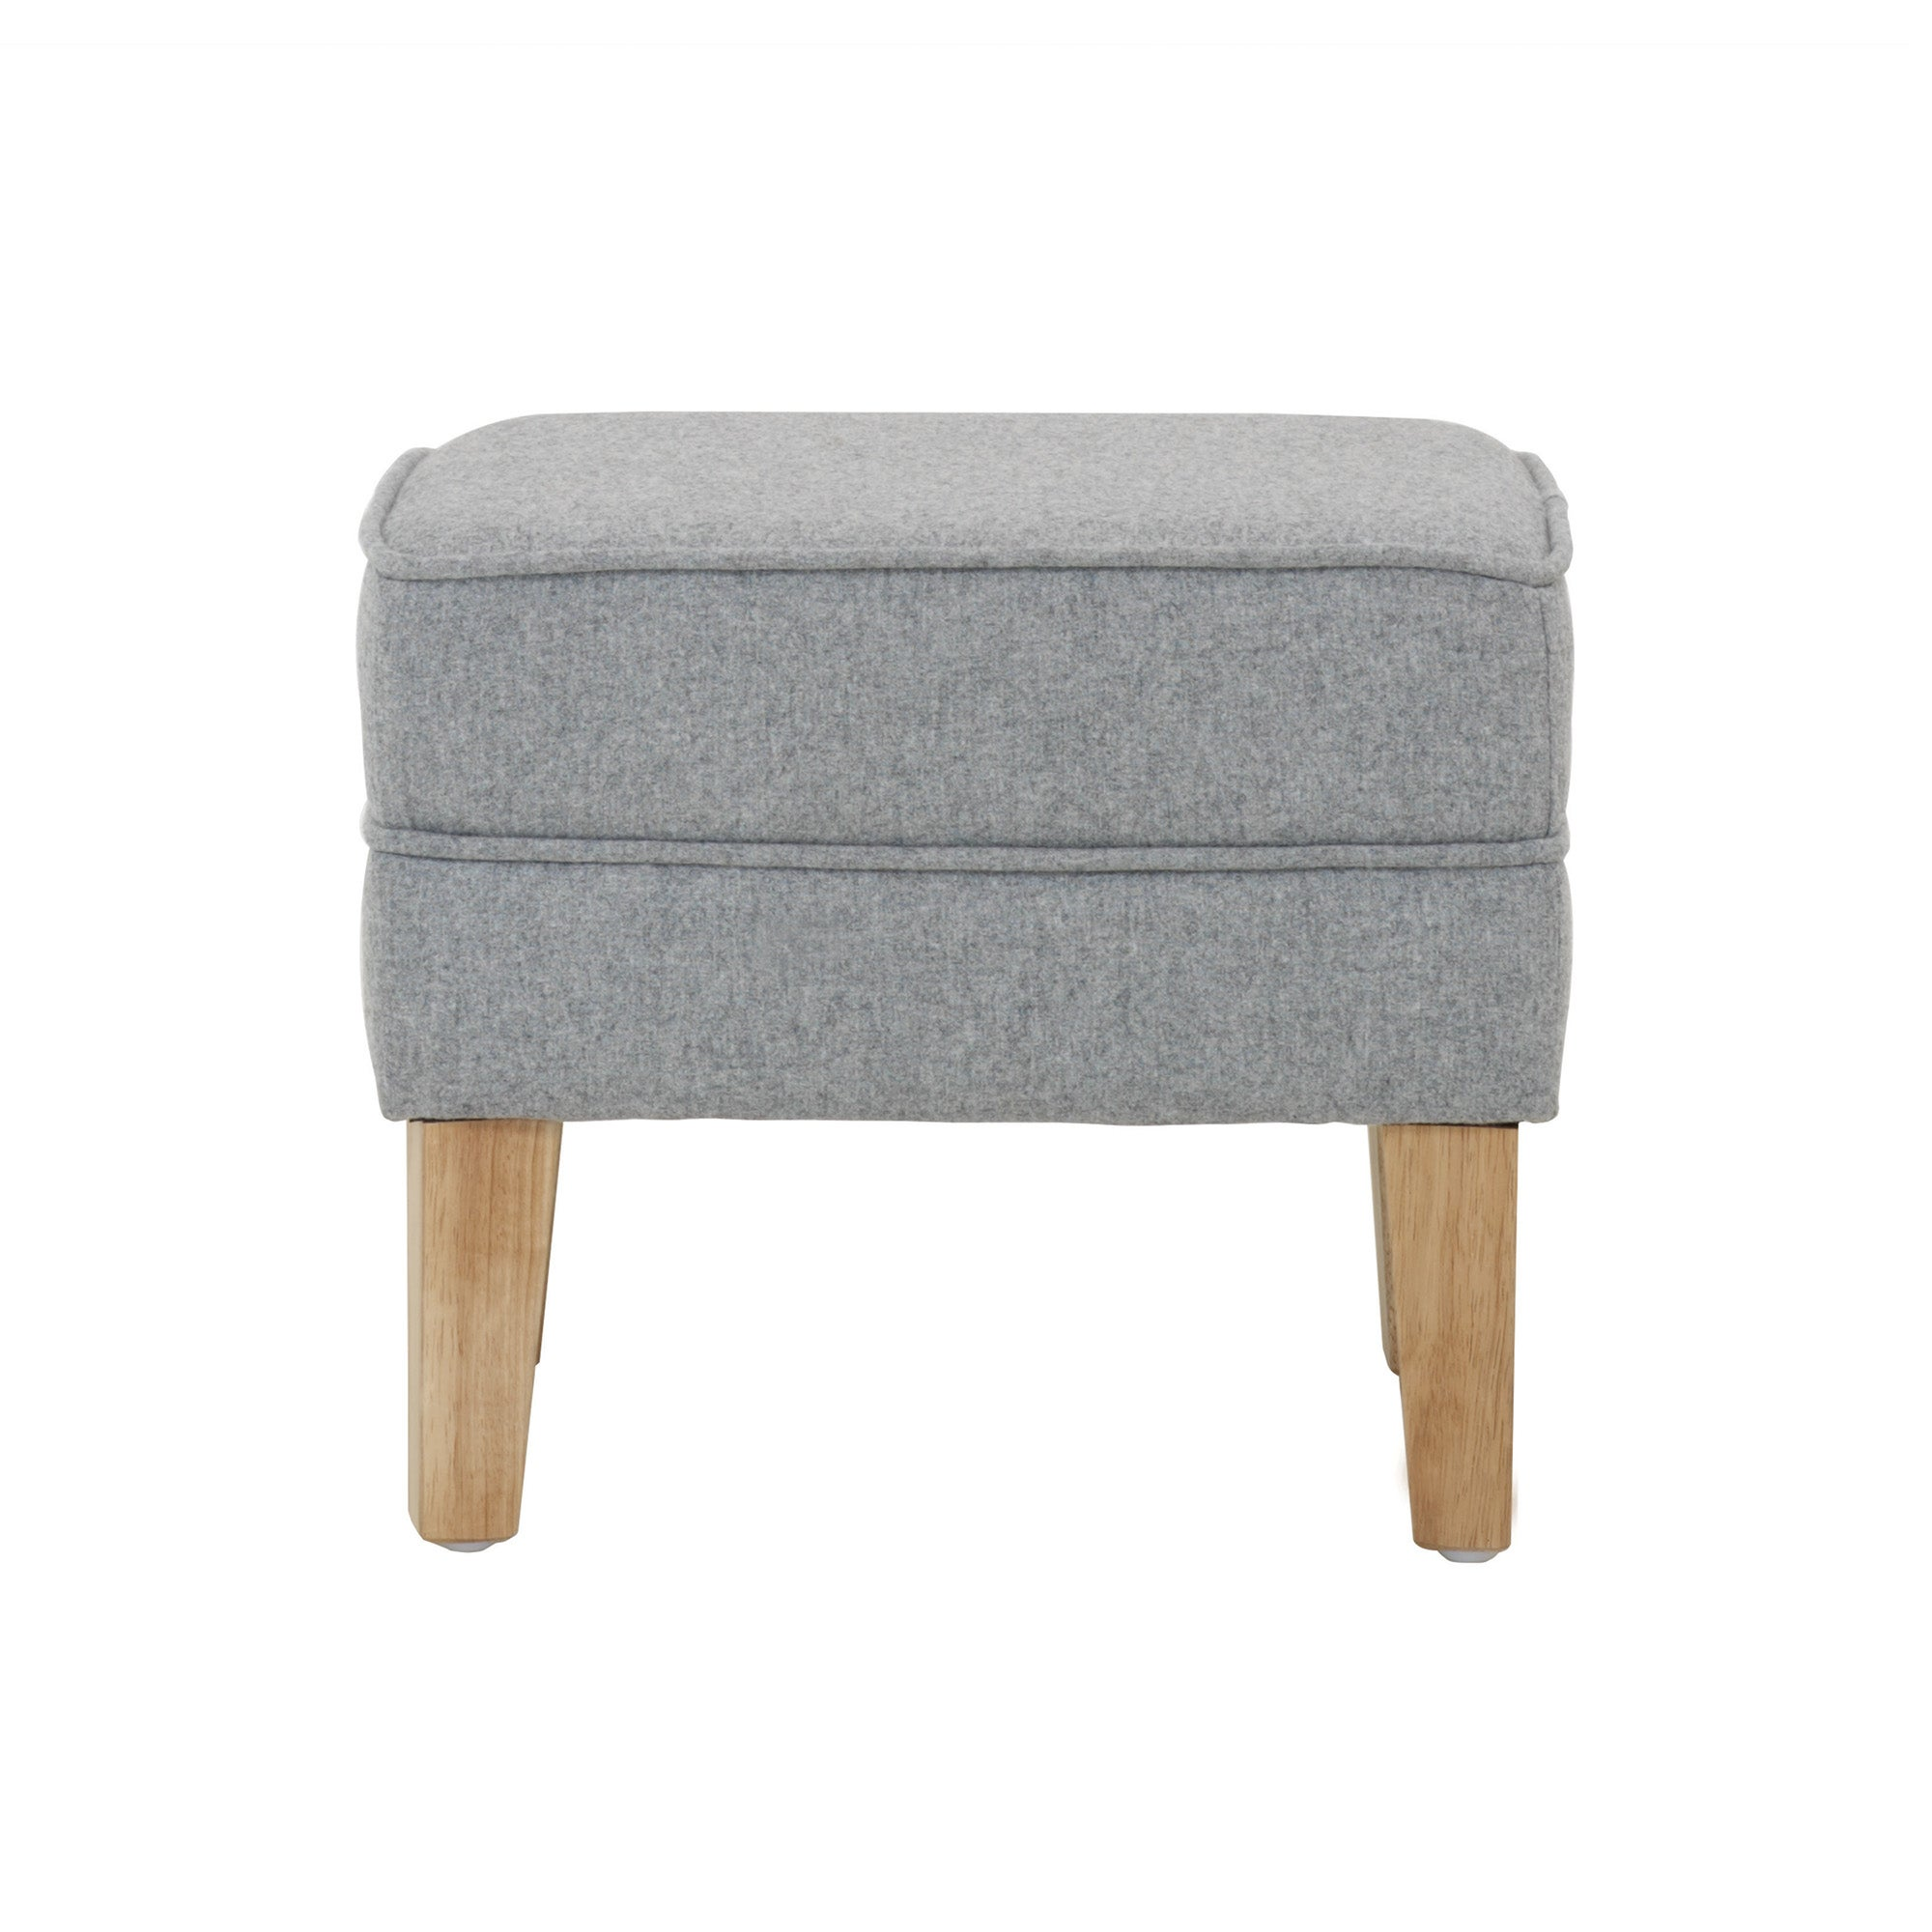 Charcoal Madrid Footstool